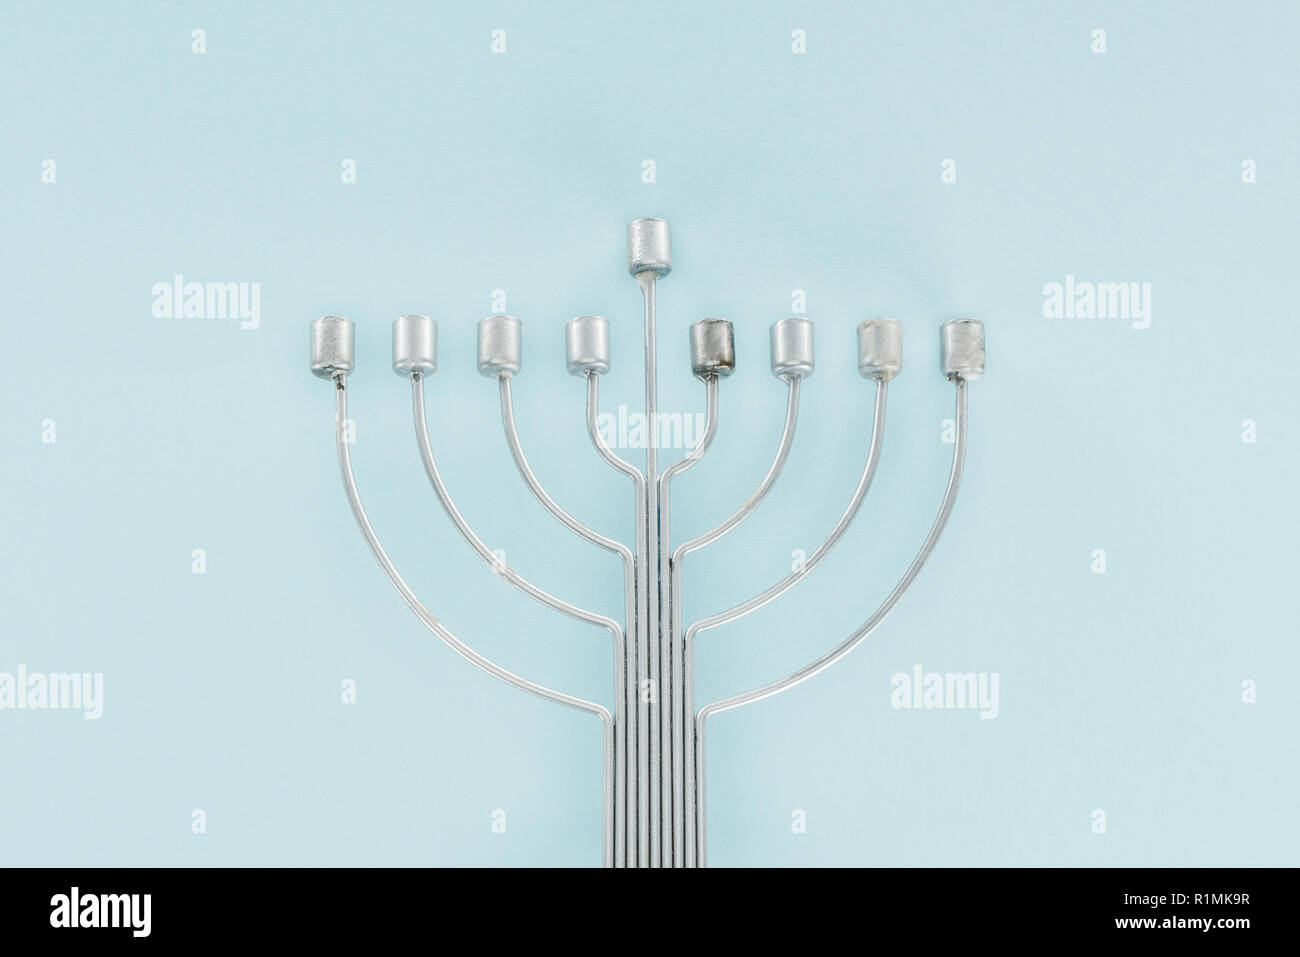 top view of traditional menorah on blue backdrop, hannukah celebration concept - Stock Image